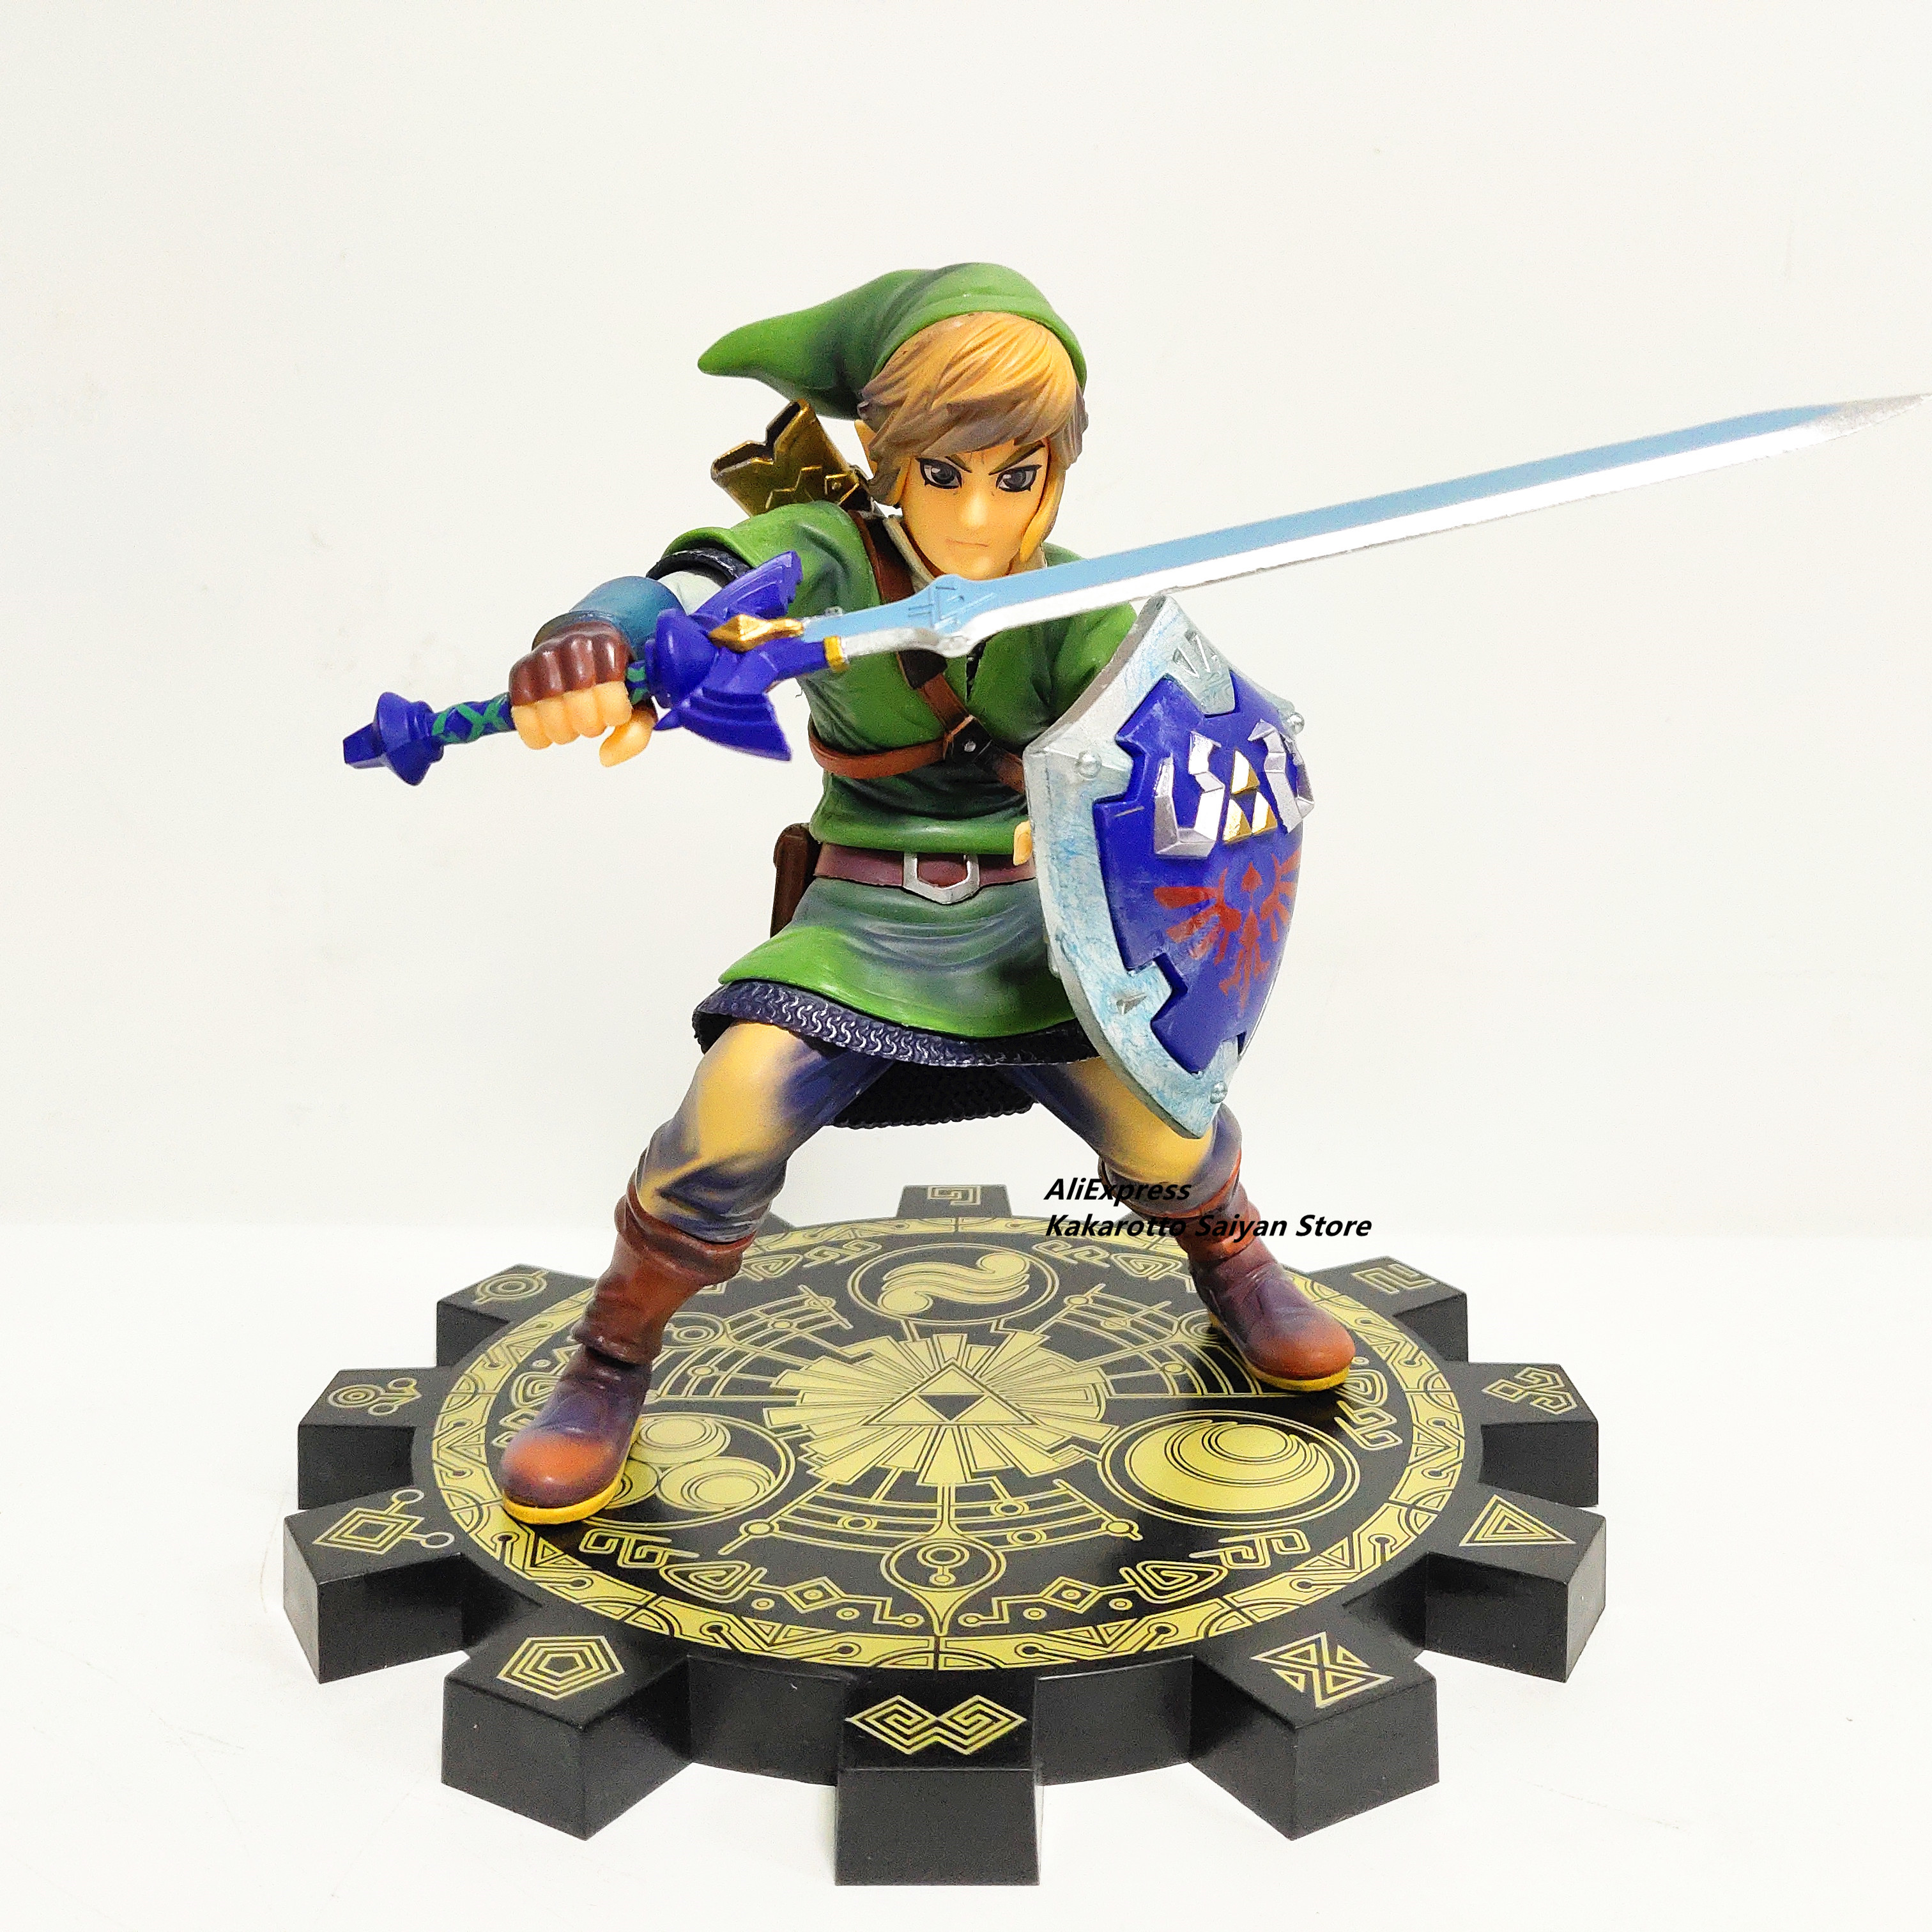 Zelda Skyward Sword PVC Action Figure 1/7 Anime Game Toy Zelda Link Figurine Collectible Model Toy